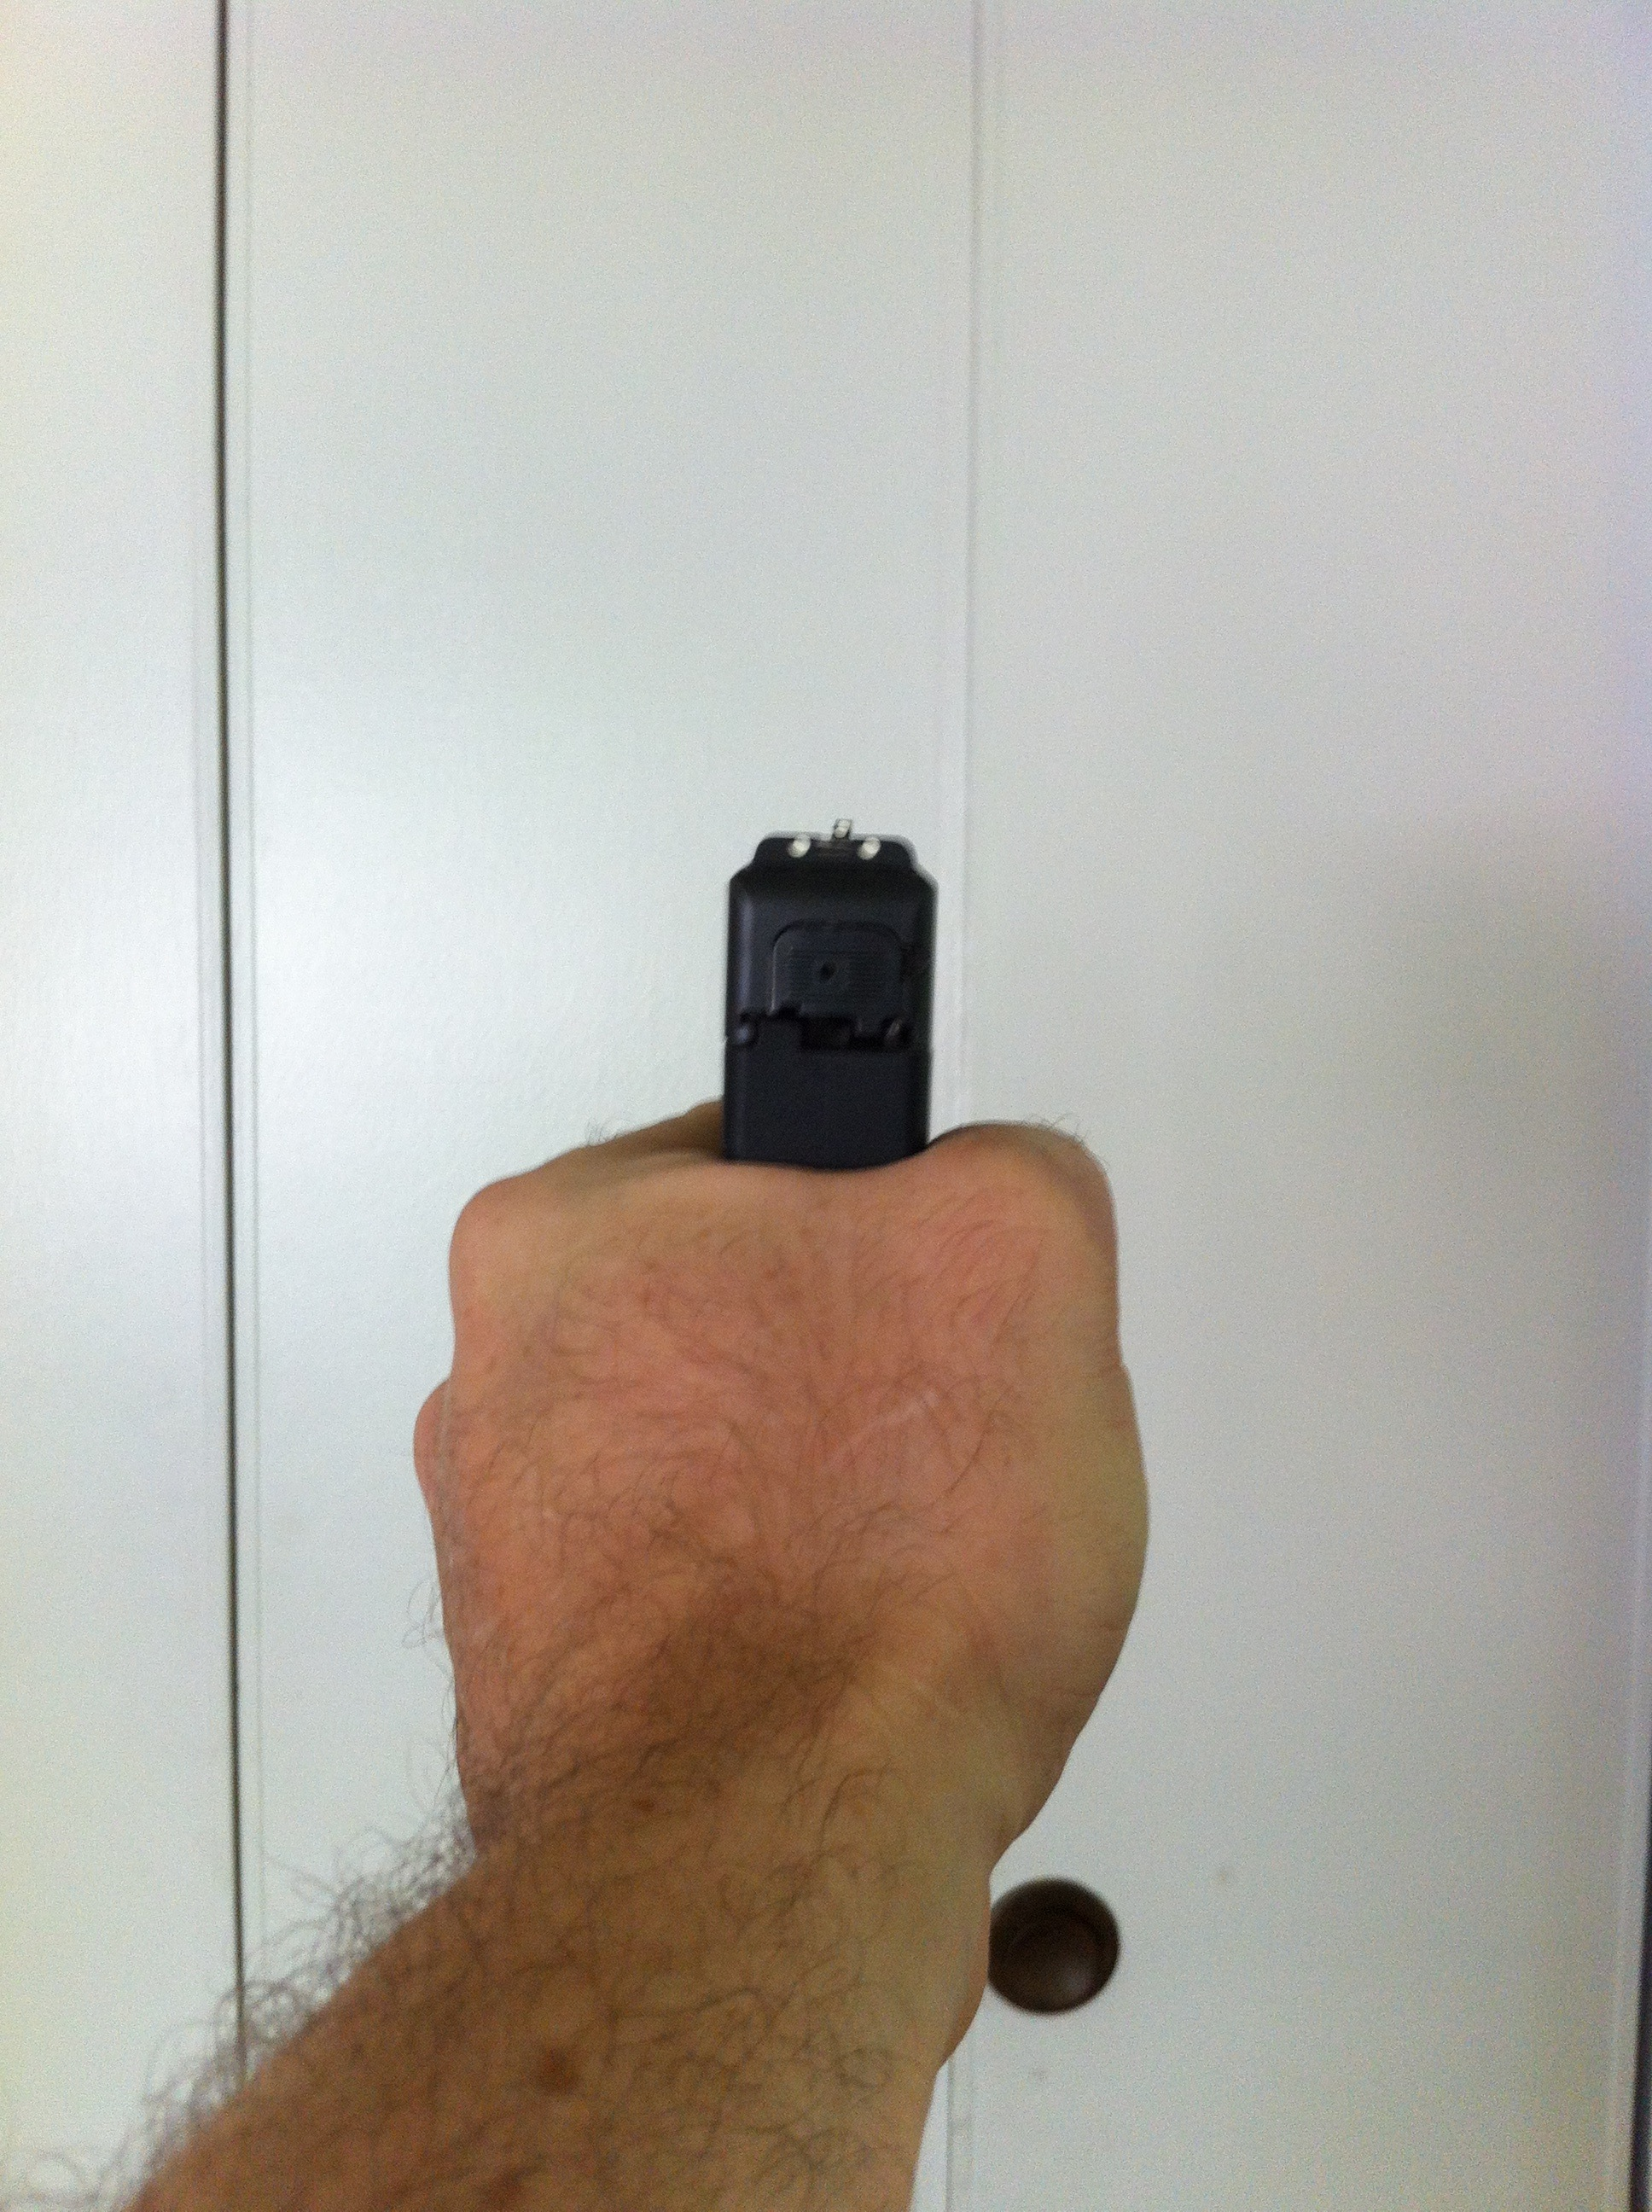 The Nano grip from the rear